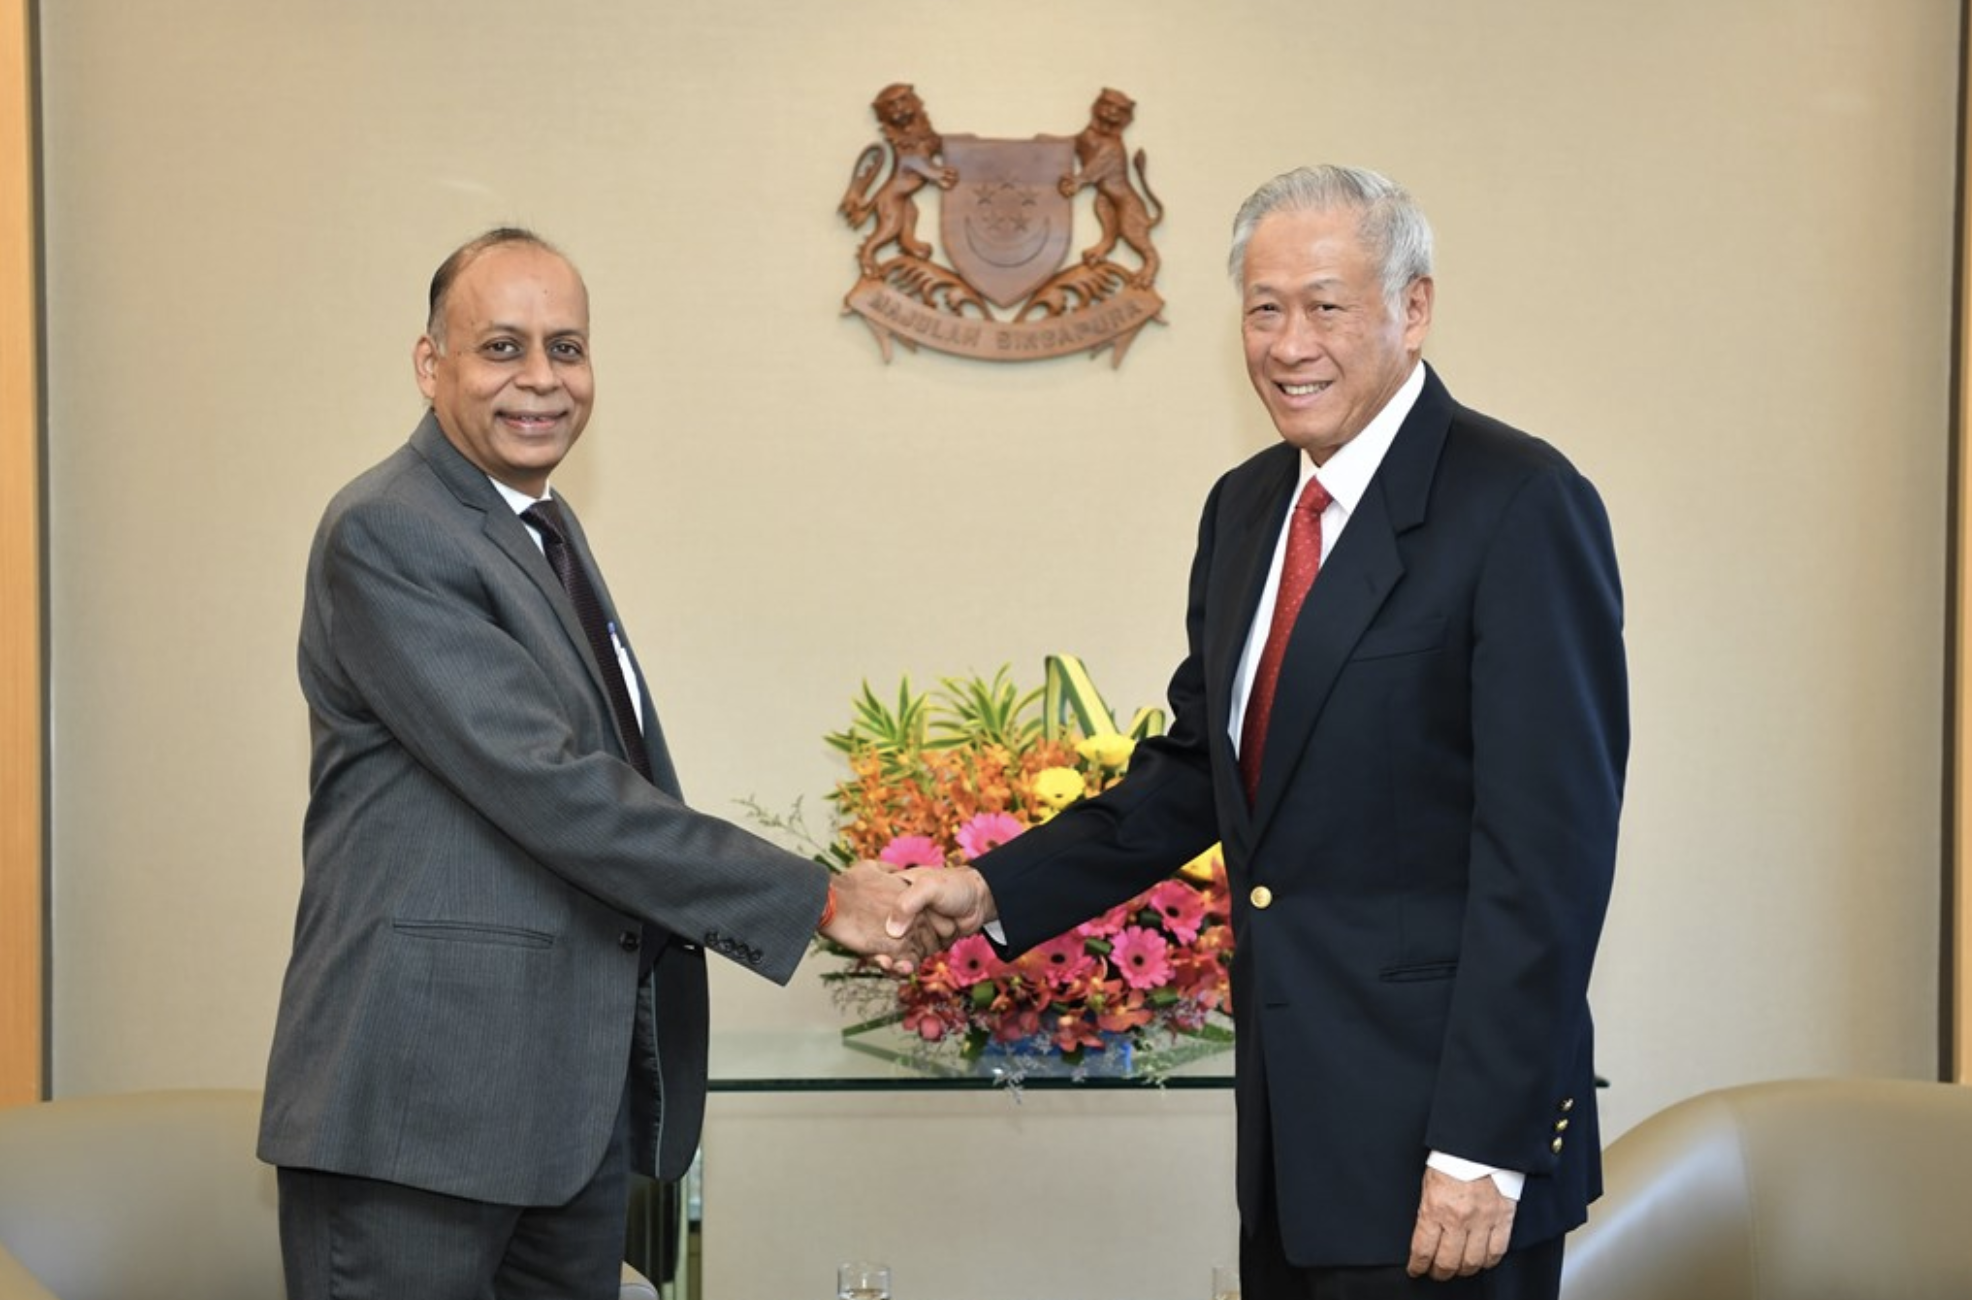 Dr Kumar (left) with Minister for Defence Dr Ng Eng Hen (right) at the Ministry of Defence. Photo courtesy: MINDEF